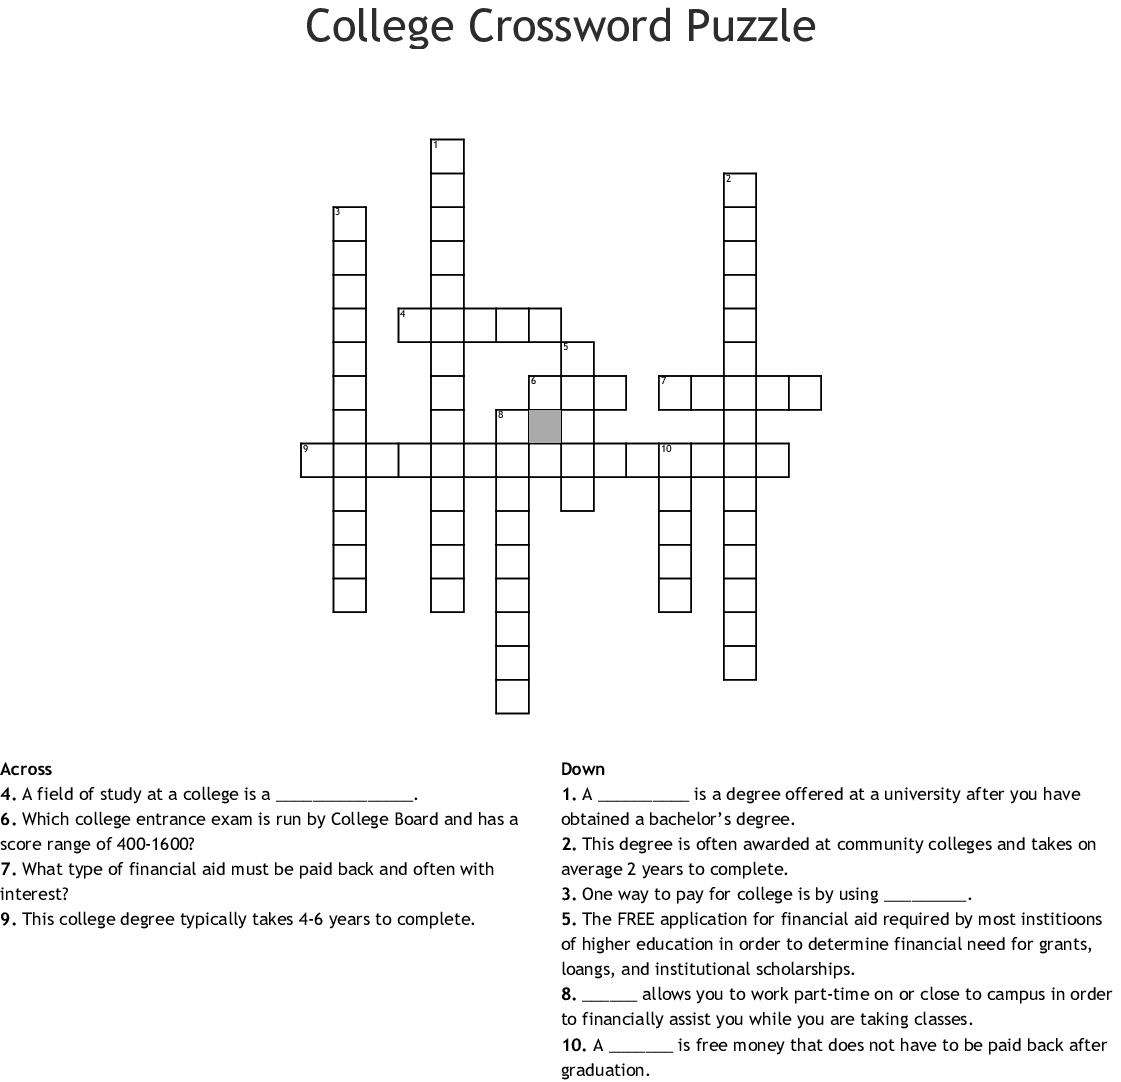 College Crossword Puzzle Crossword - Wordmint - Printable Crossword Puzzles For College Students